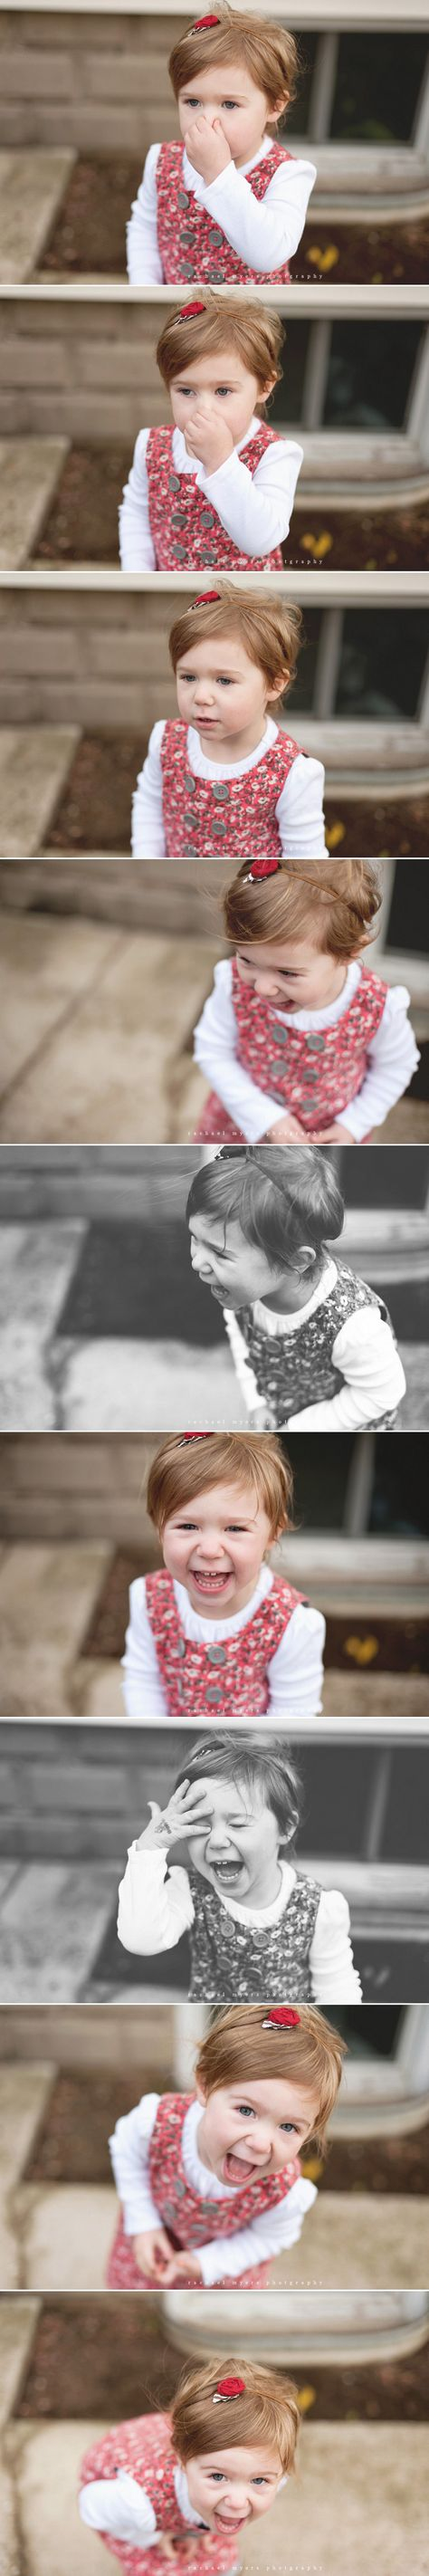 Making children really laugh for photos | Rachael Myers Photography